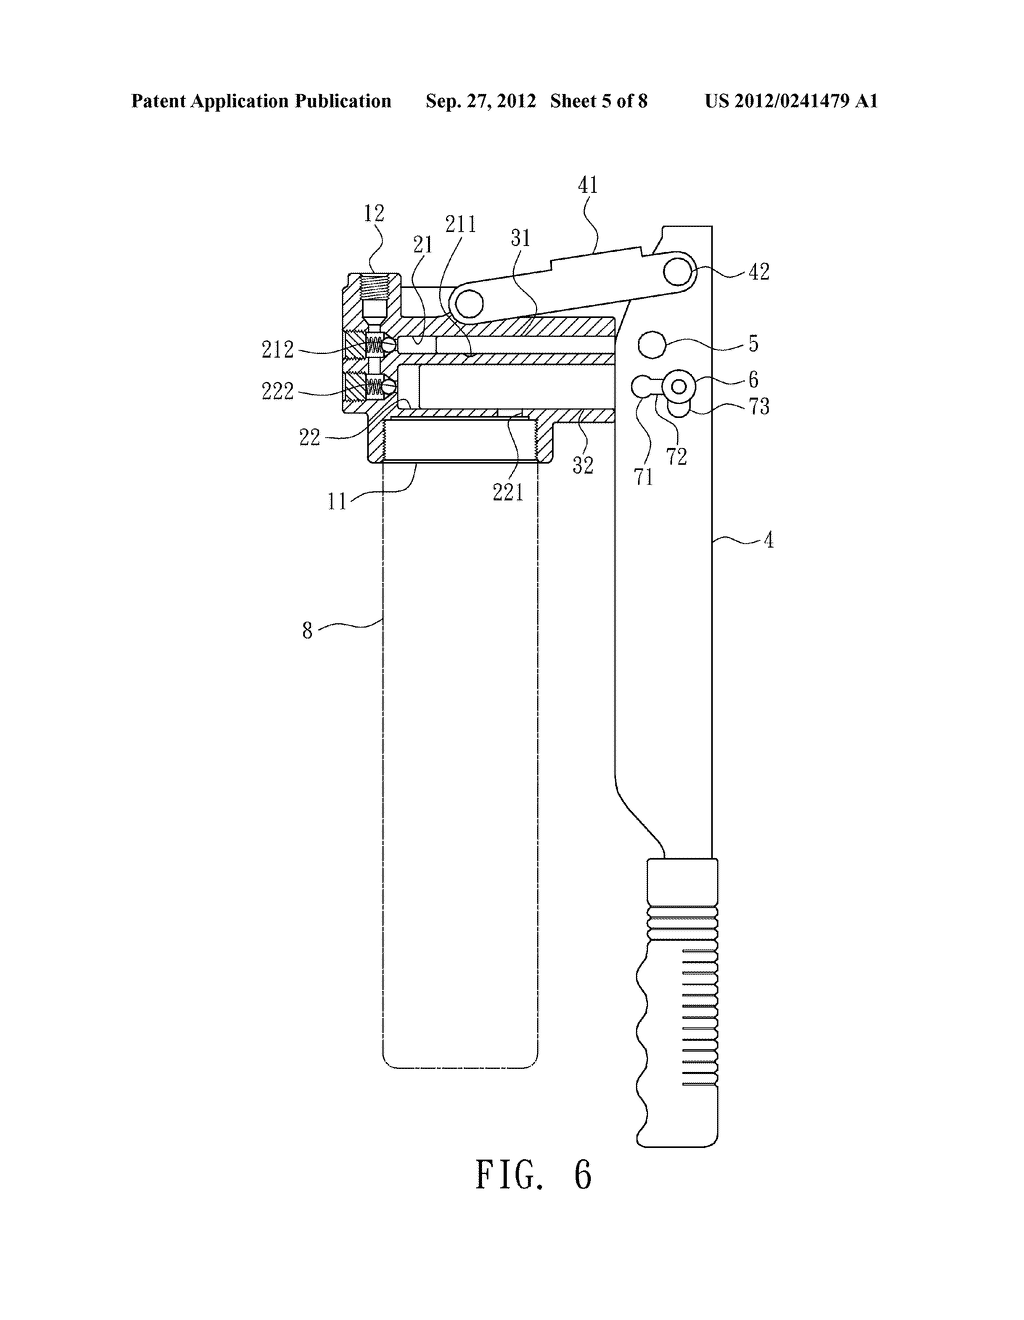 oil flow control structure for grease gun diagram, schematic, andoil flow control structure for grease gun diagram, schematic, and image 06